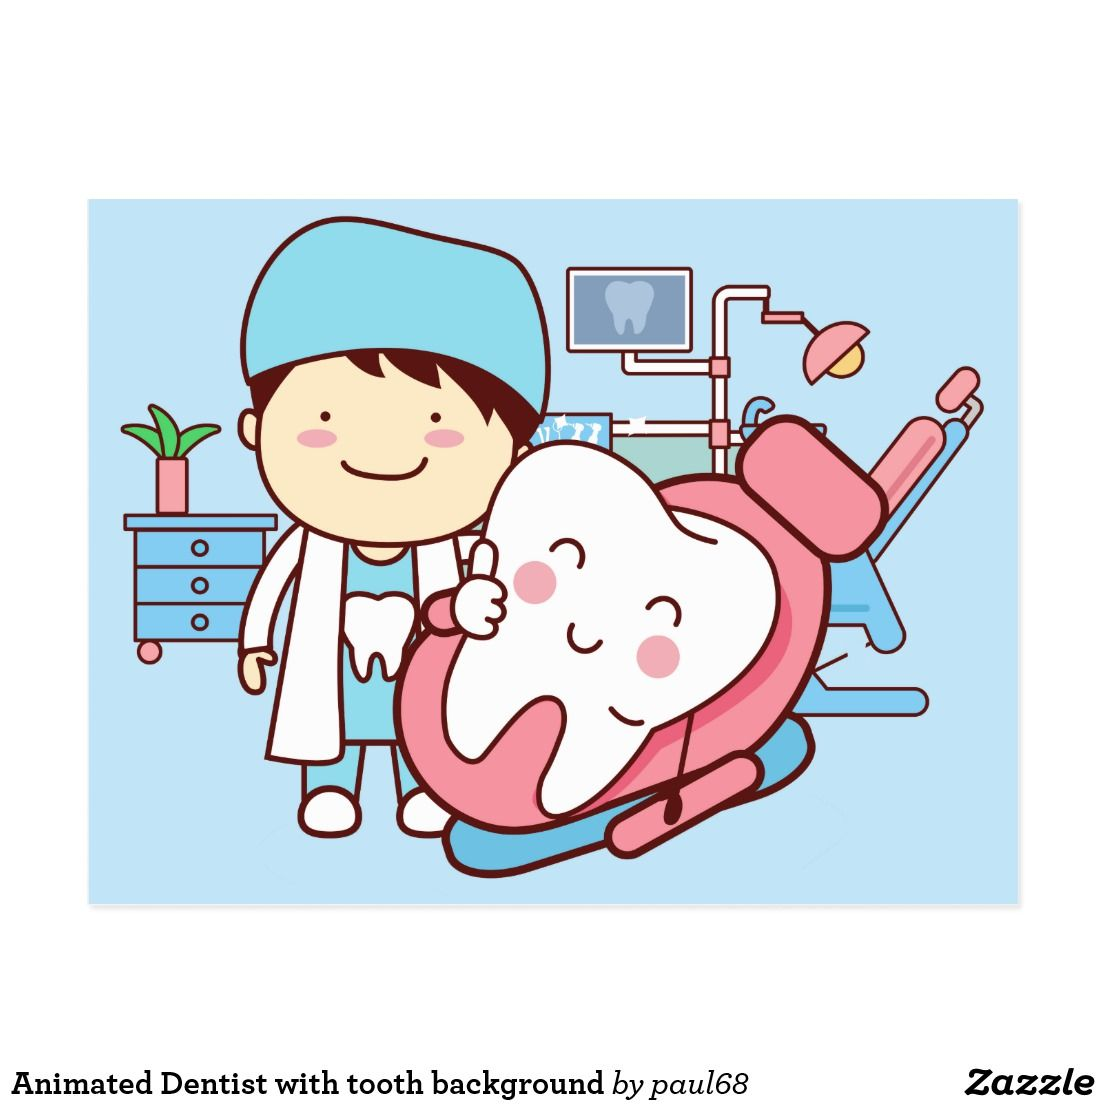 Animated Dentist with tooth background Postcard.